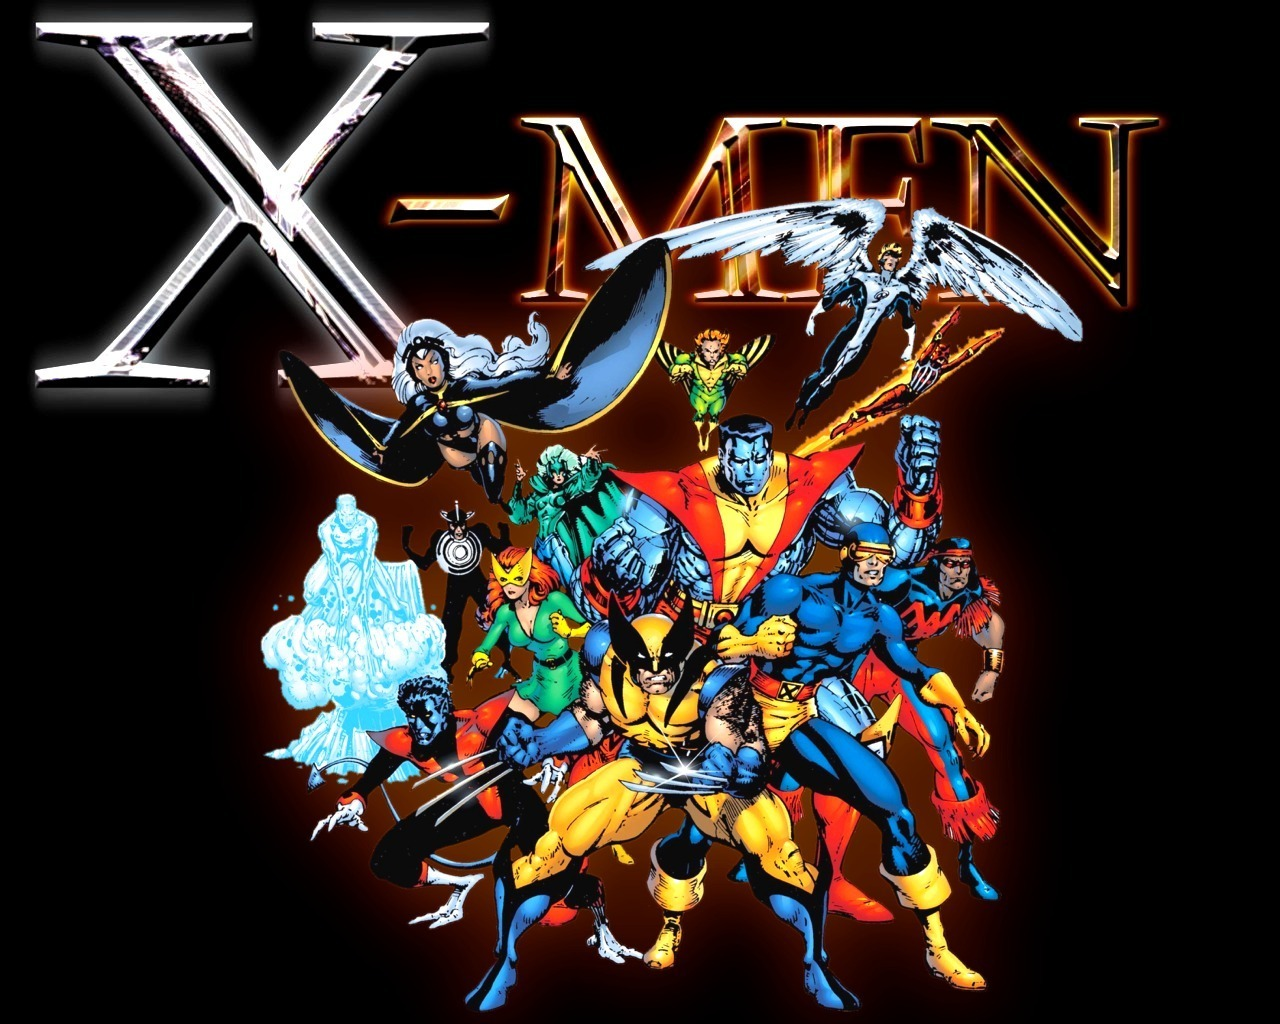 x men   X Men Wallpaper 7050808 1280x1024